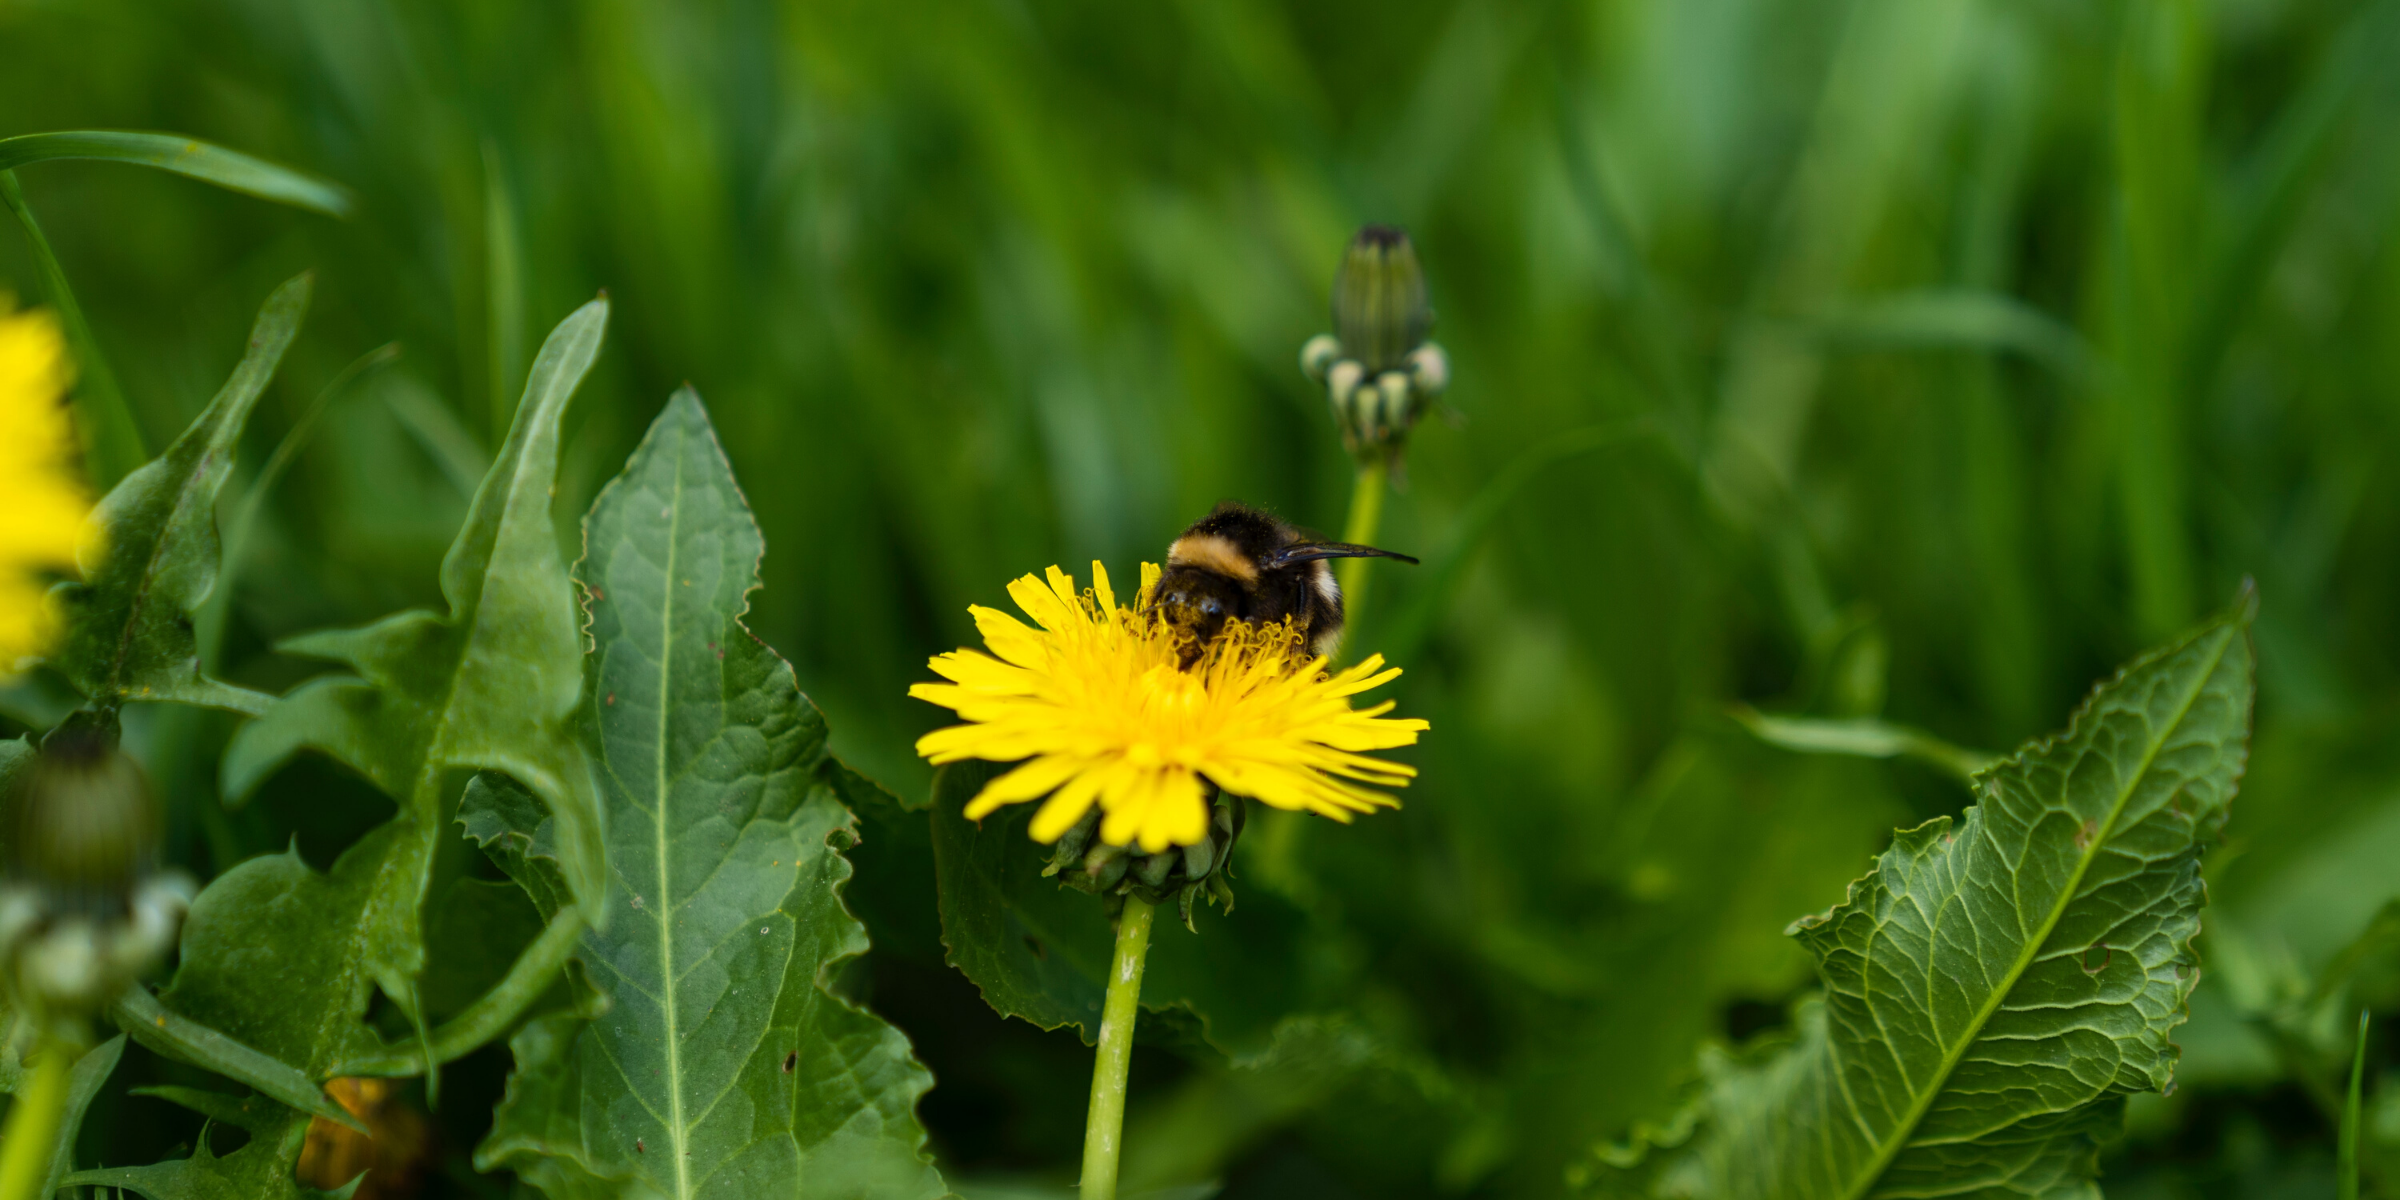 Pollinators are crucial to maintaining biodiversity